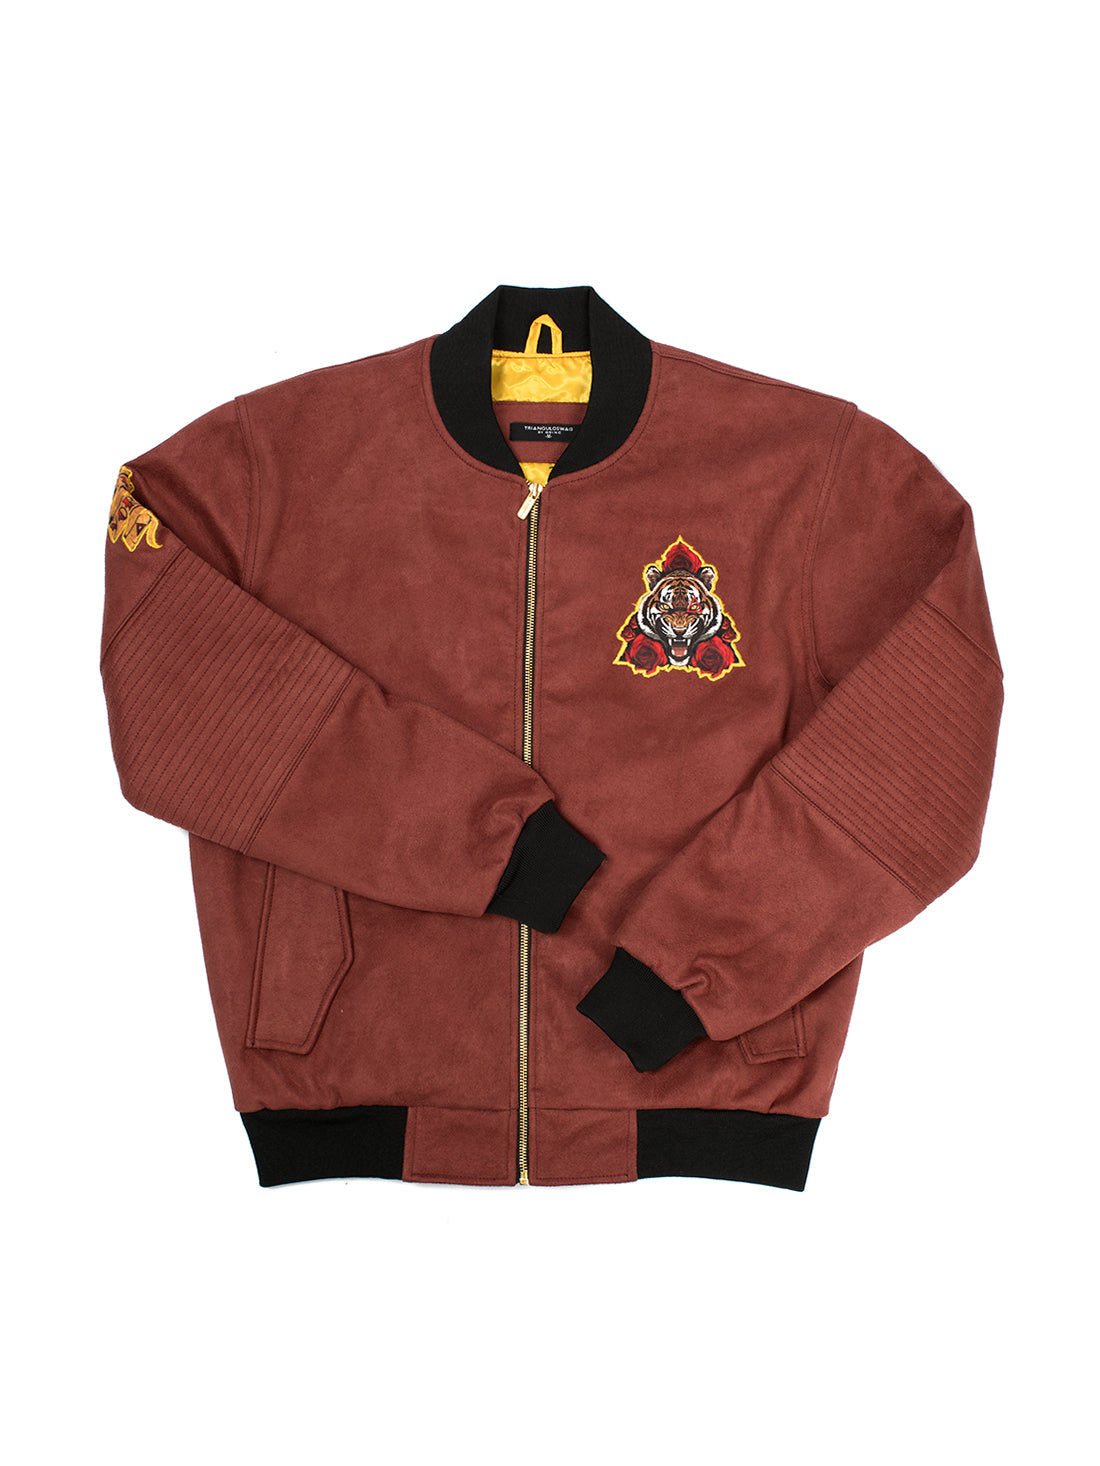 LE TIGER Burgundy SUEDE JACKET